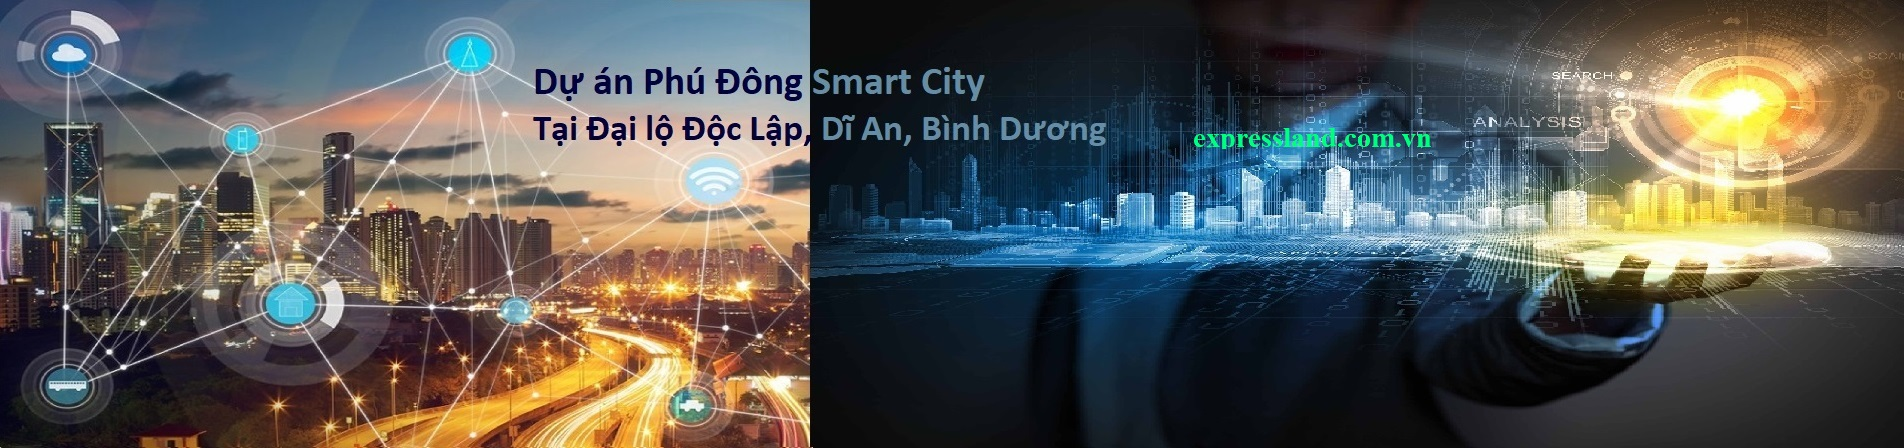 Phu dong smart city expresslandcomvn